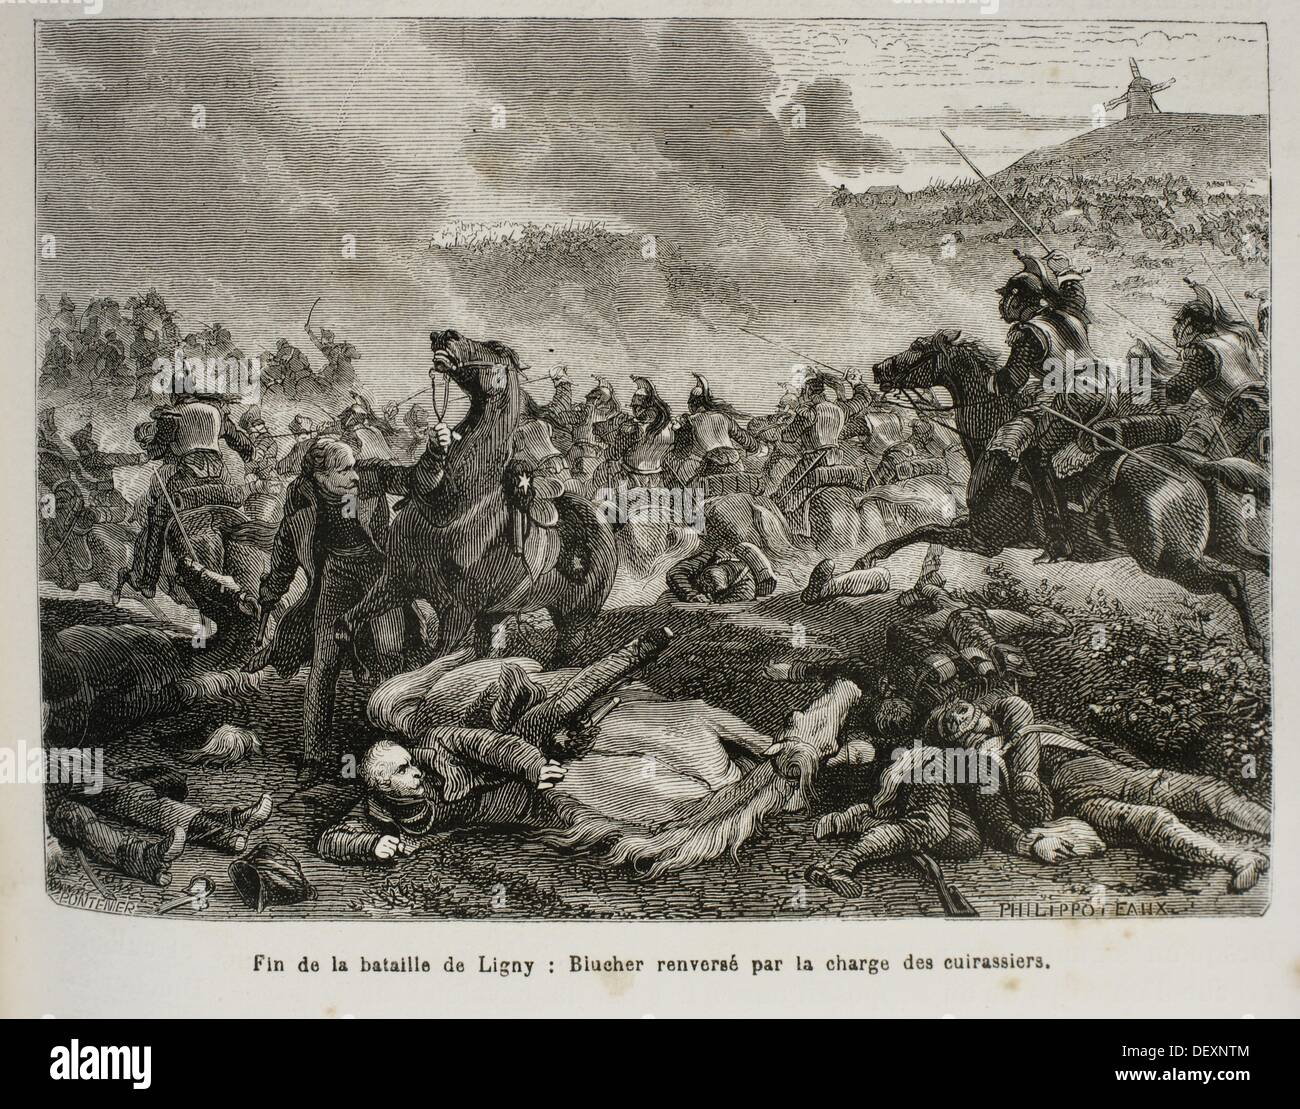 France, History, 19th Century, The Battle of Ligny 16 June 1815 was the last victory of the military career of Napoleon - Stock Image